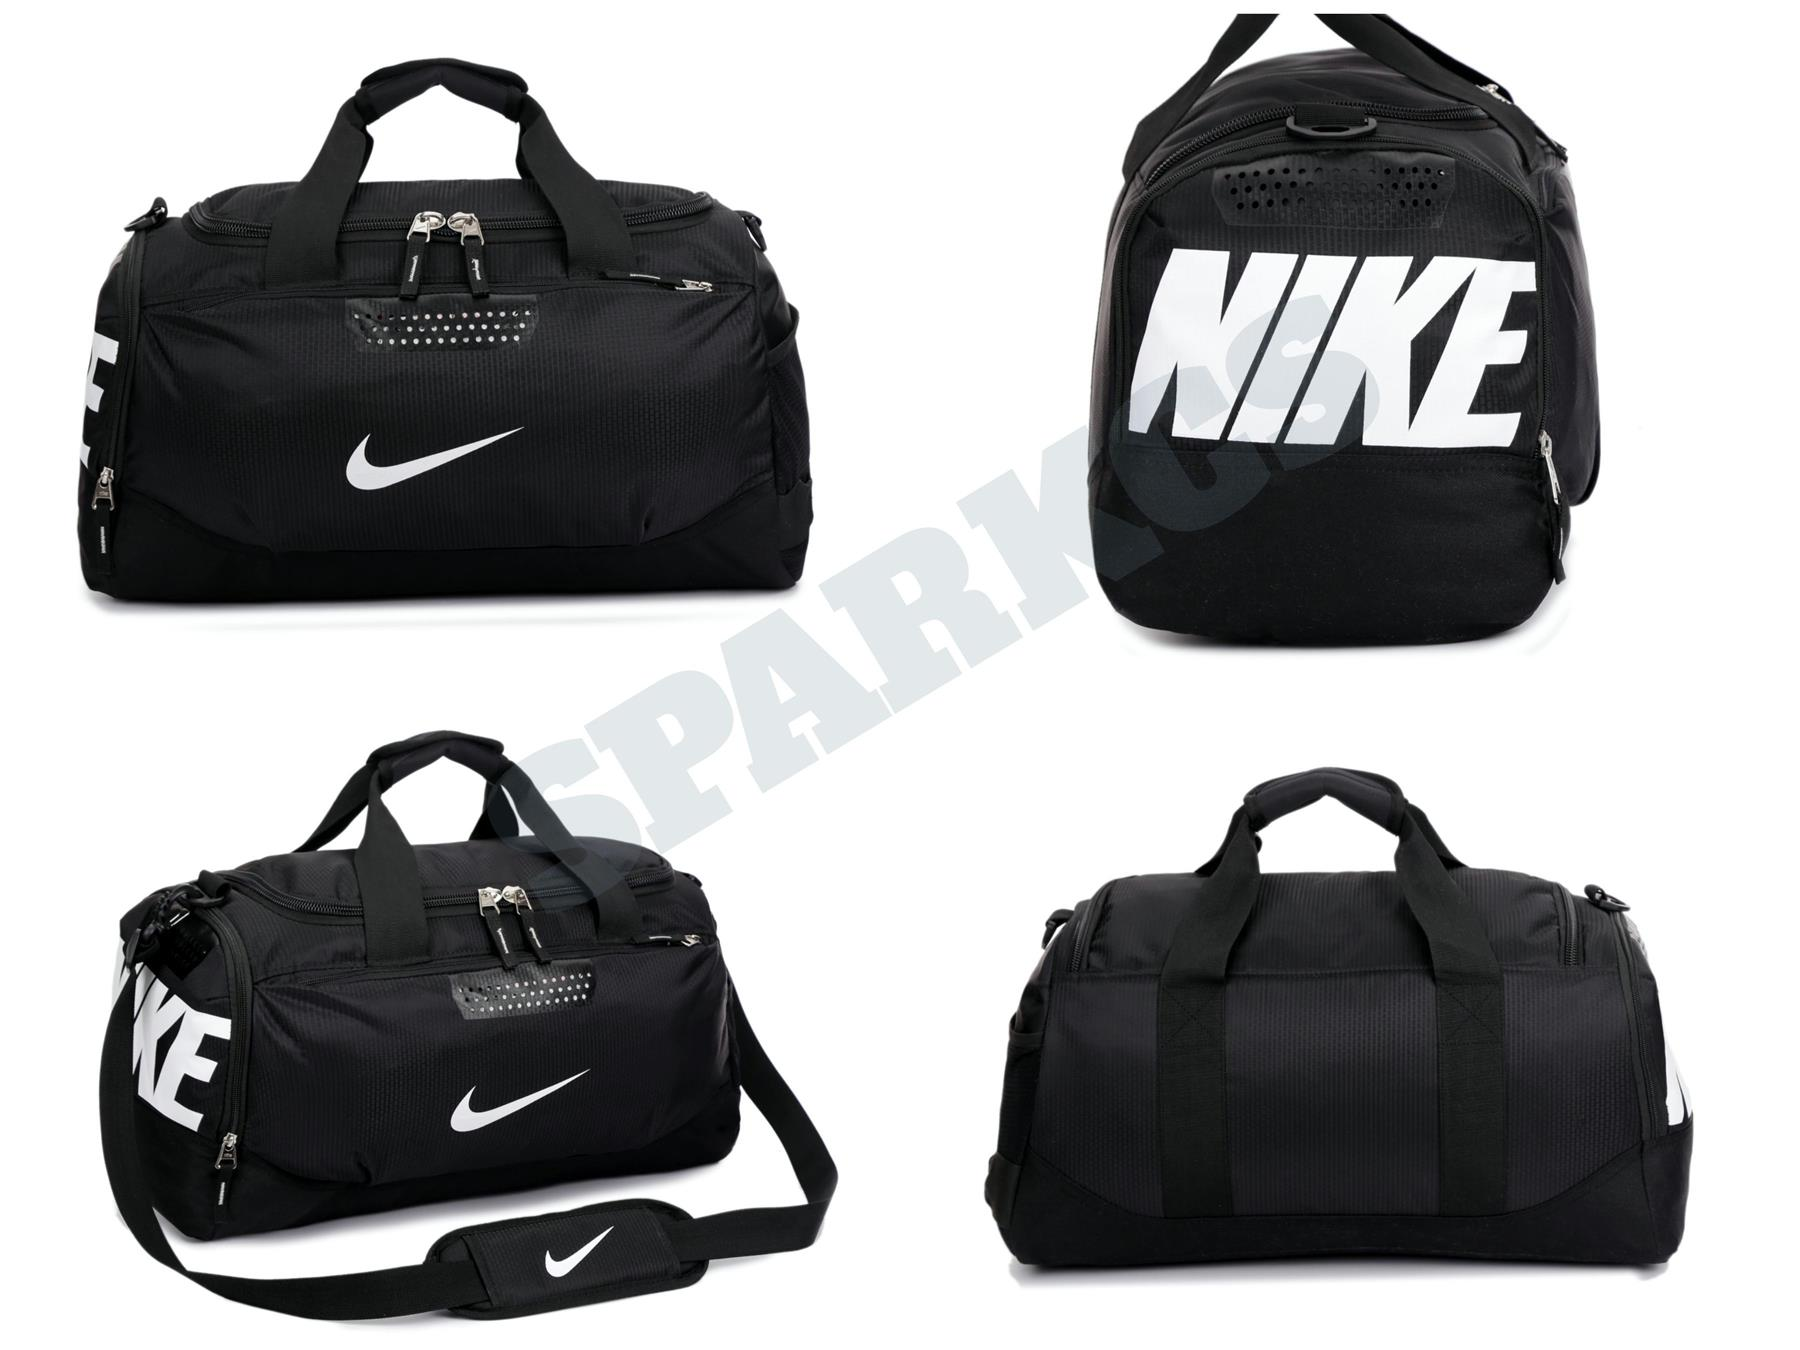 b6c3ed5d9b Nike Duffel Sport Gym Bag (end 1 6 2019 2 15 PM)